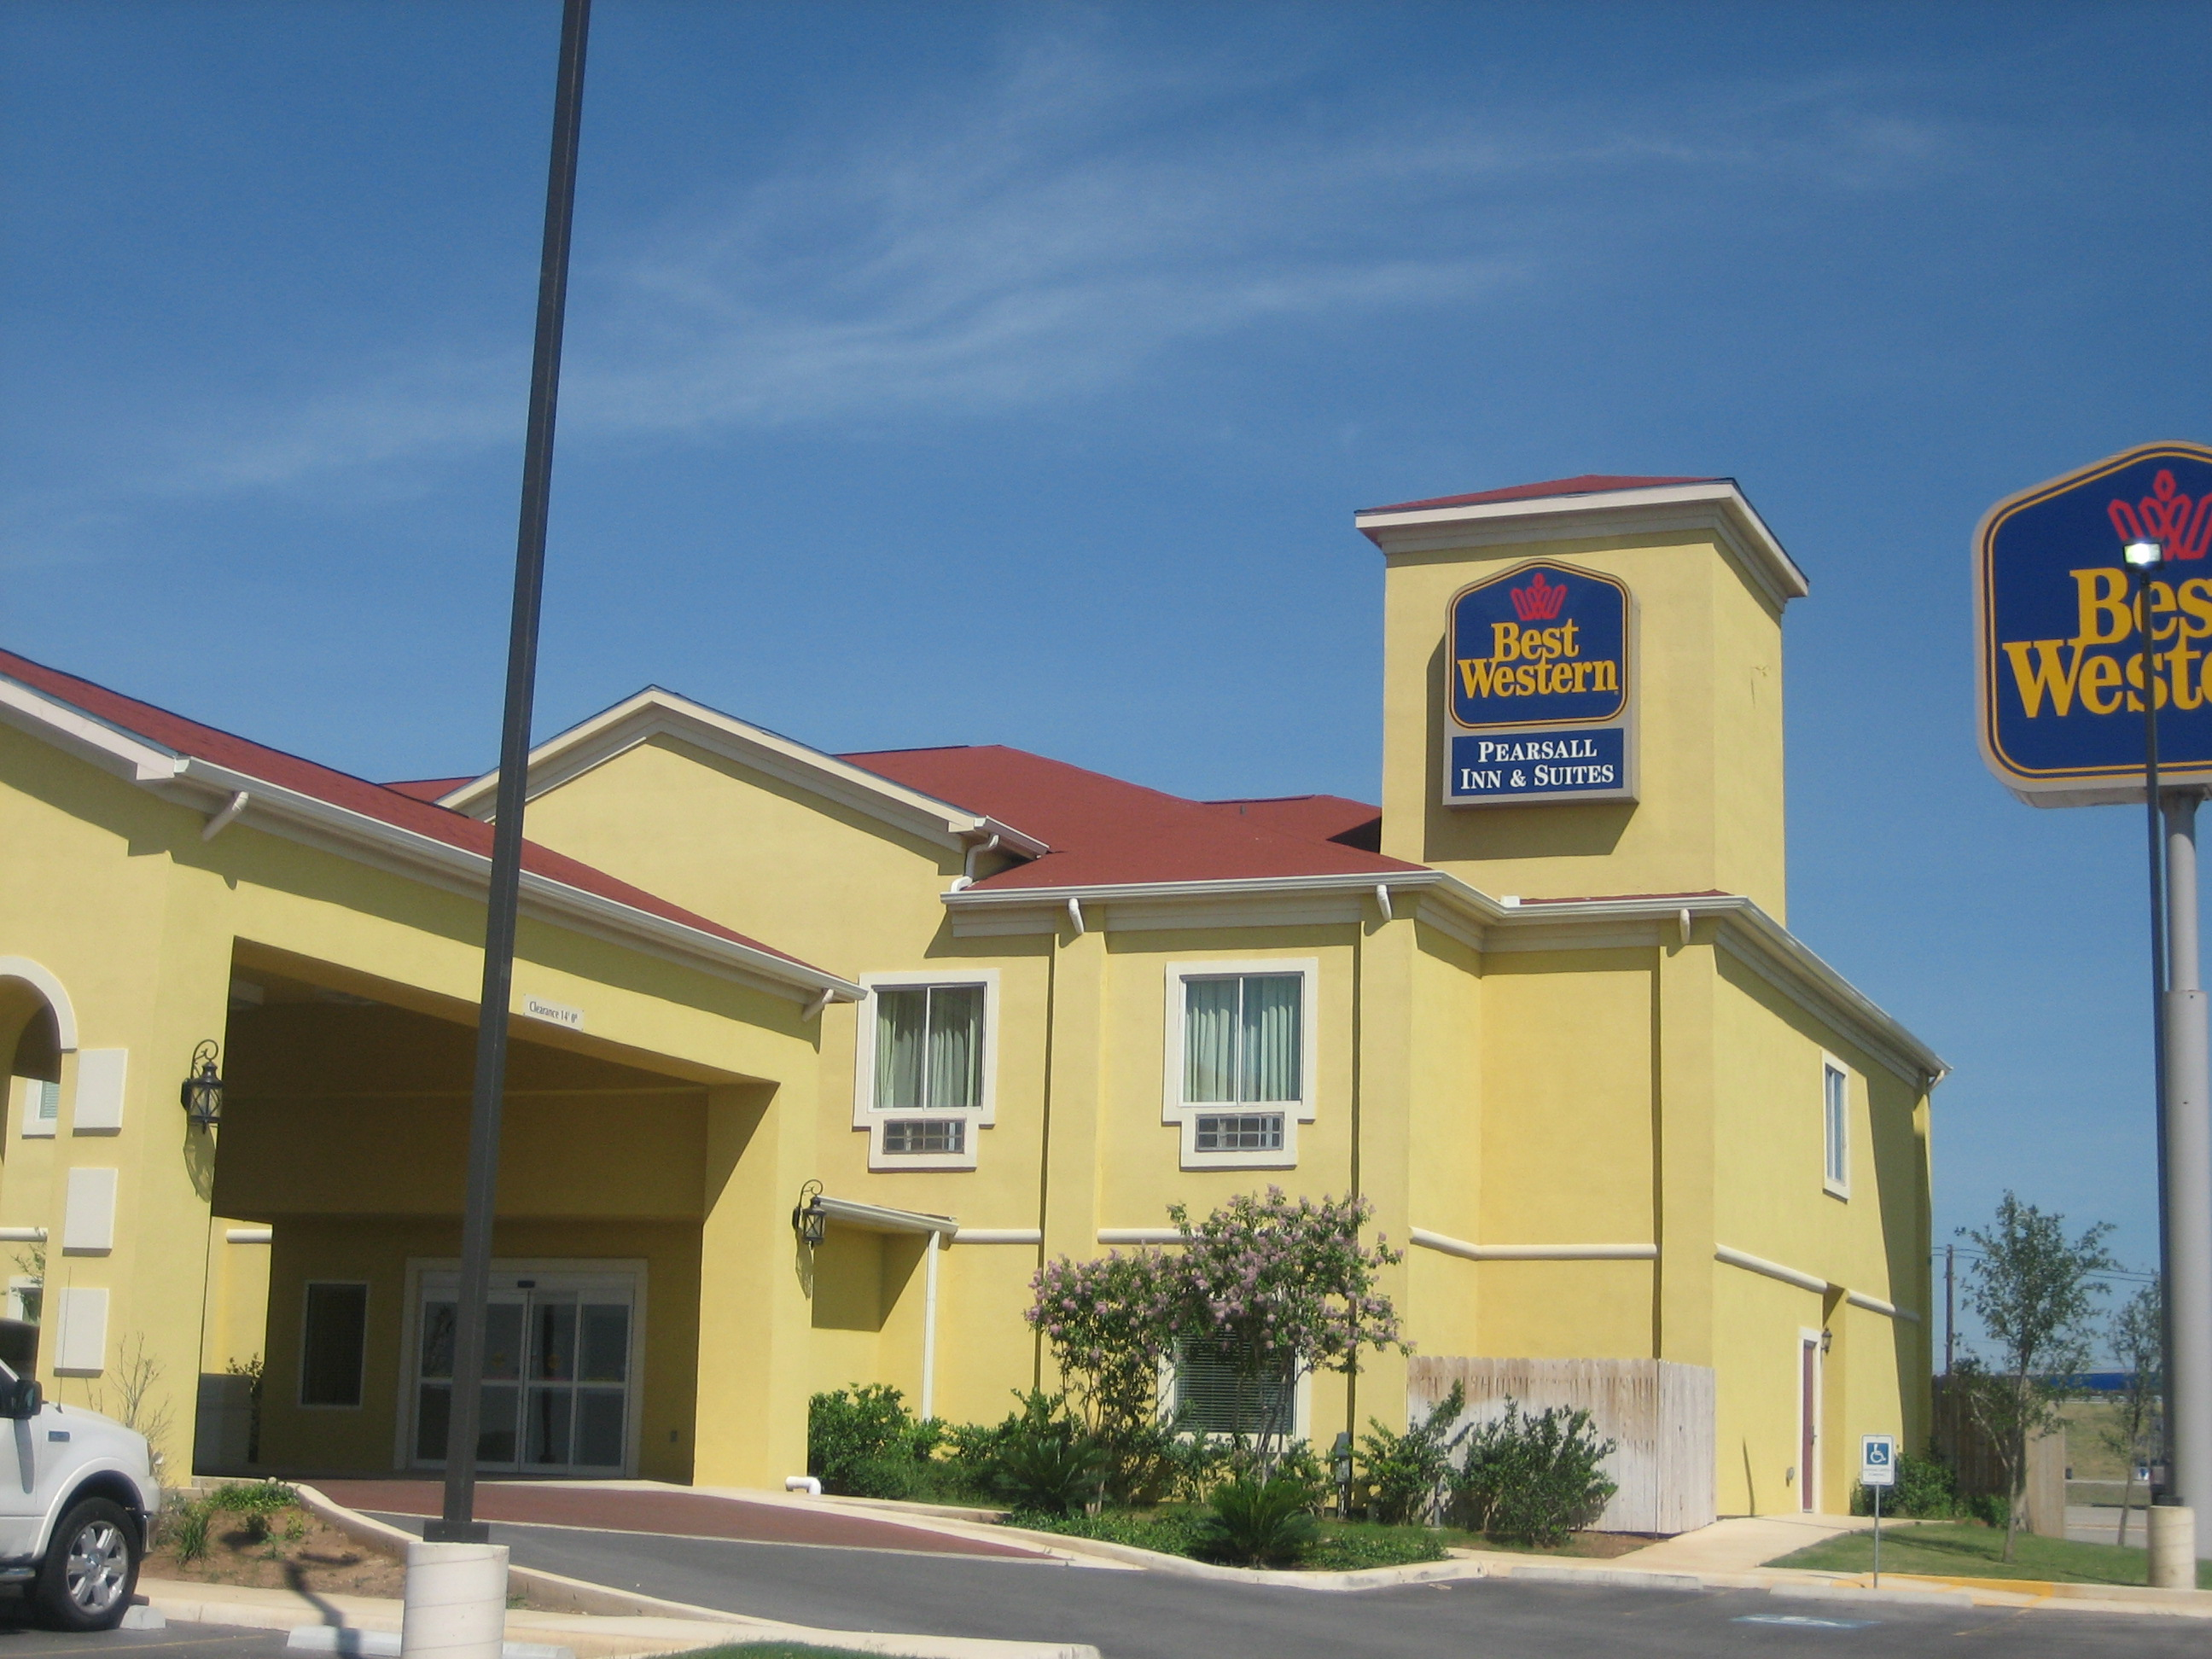 Best Western Hotels Along I